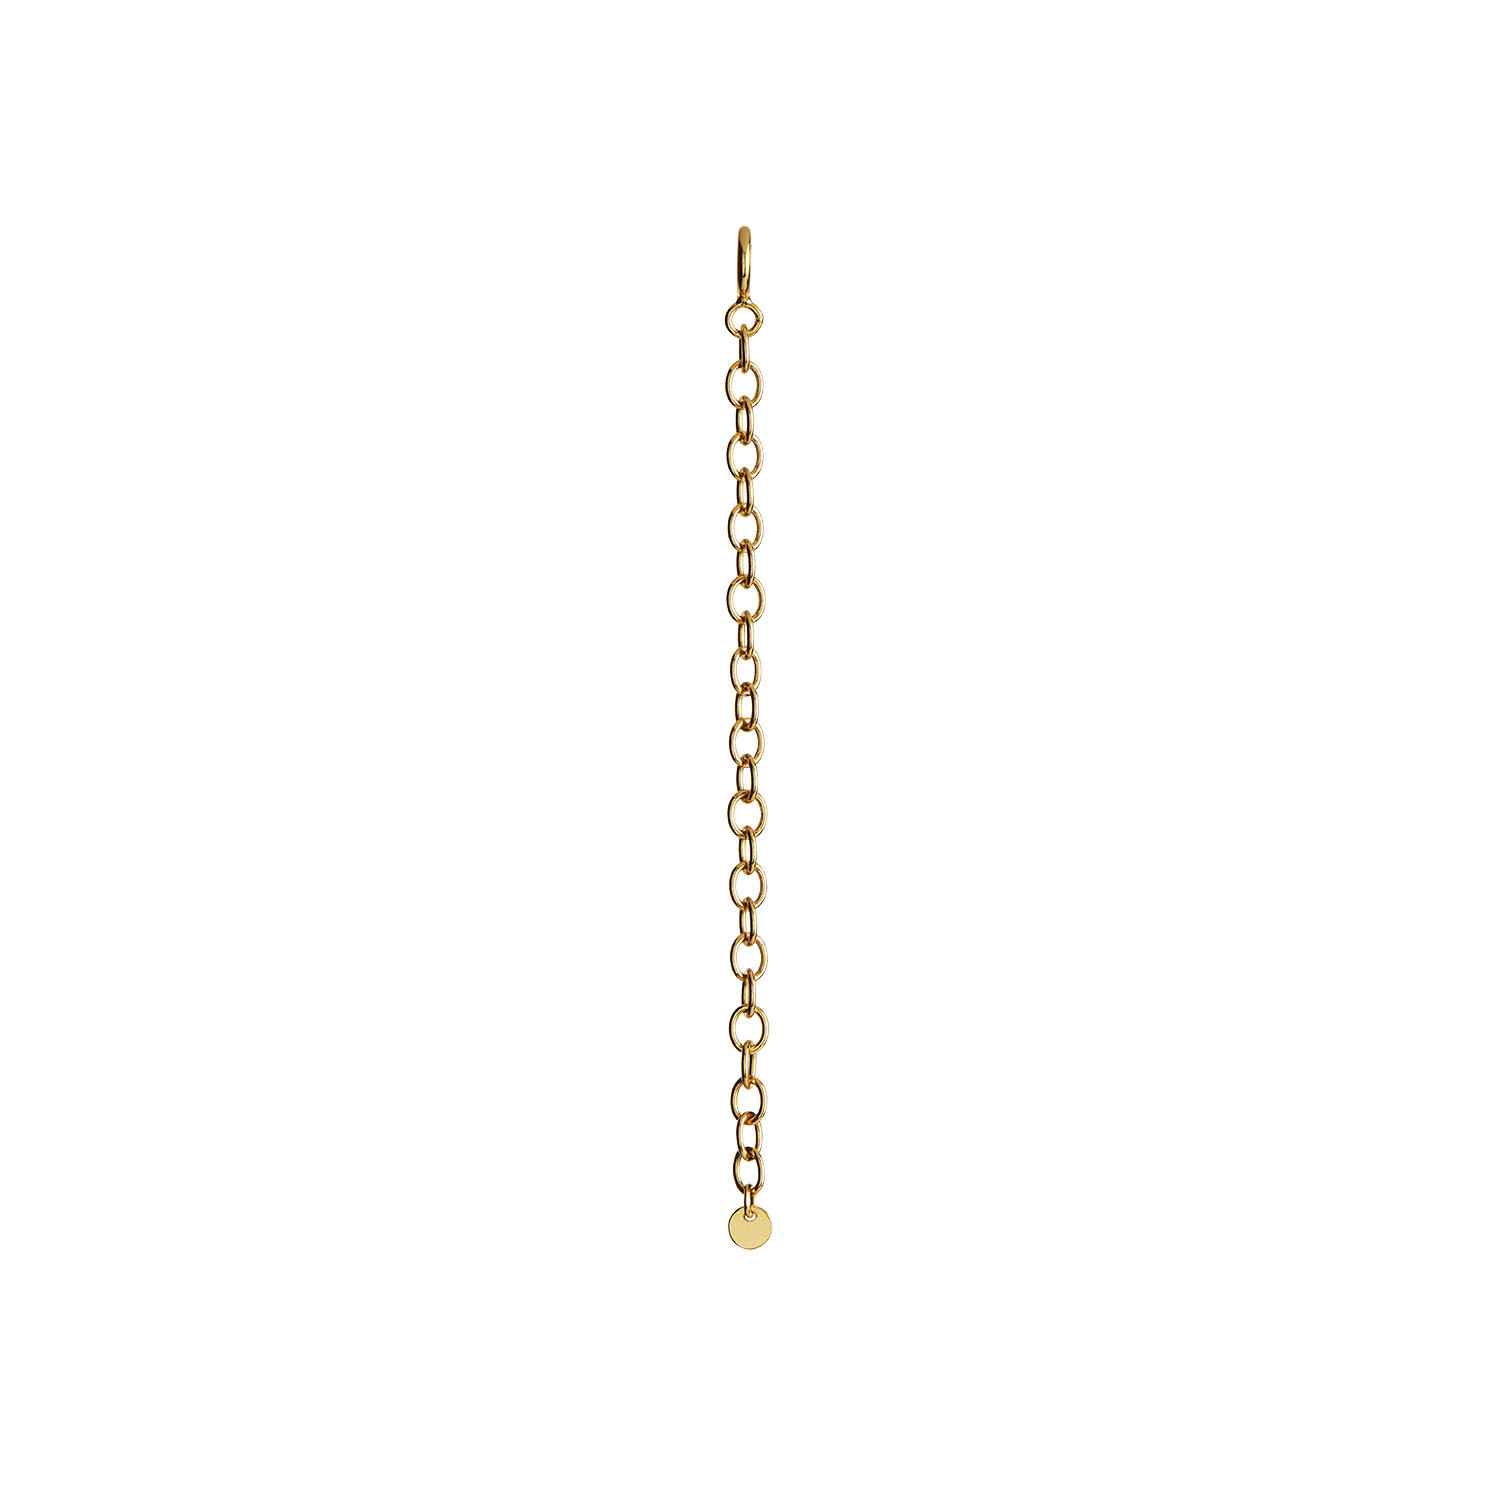 Necklace Extension Chain Gold